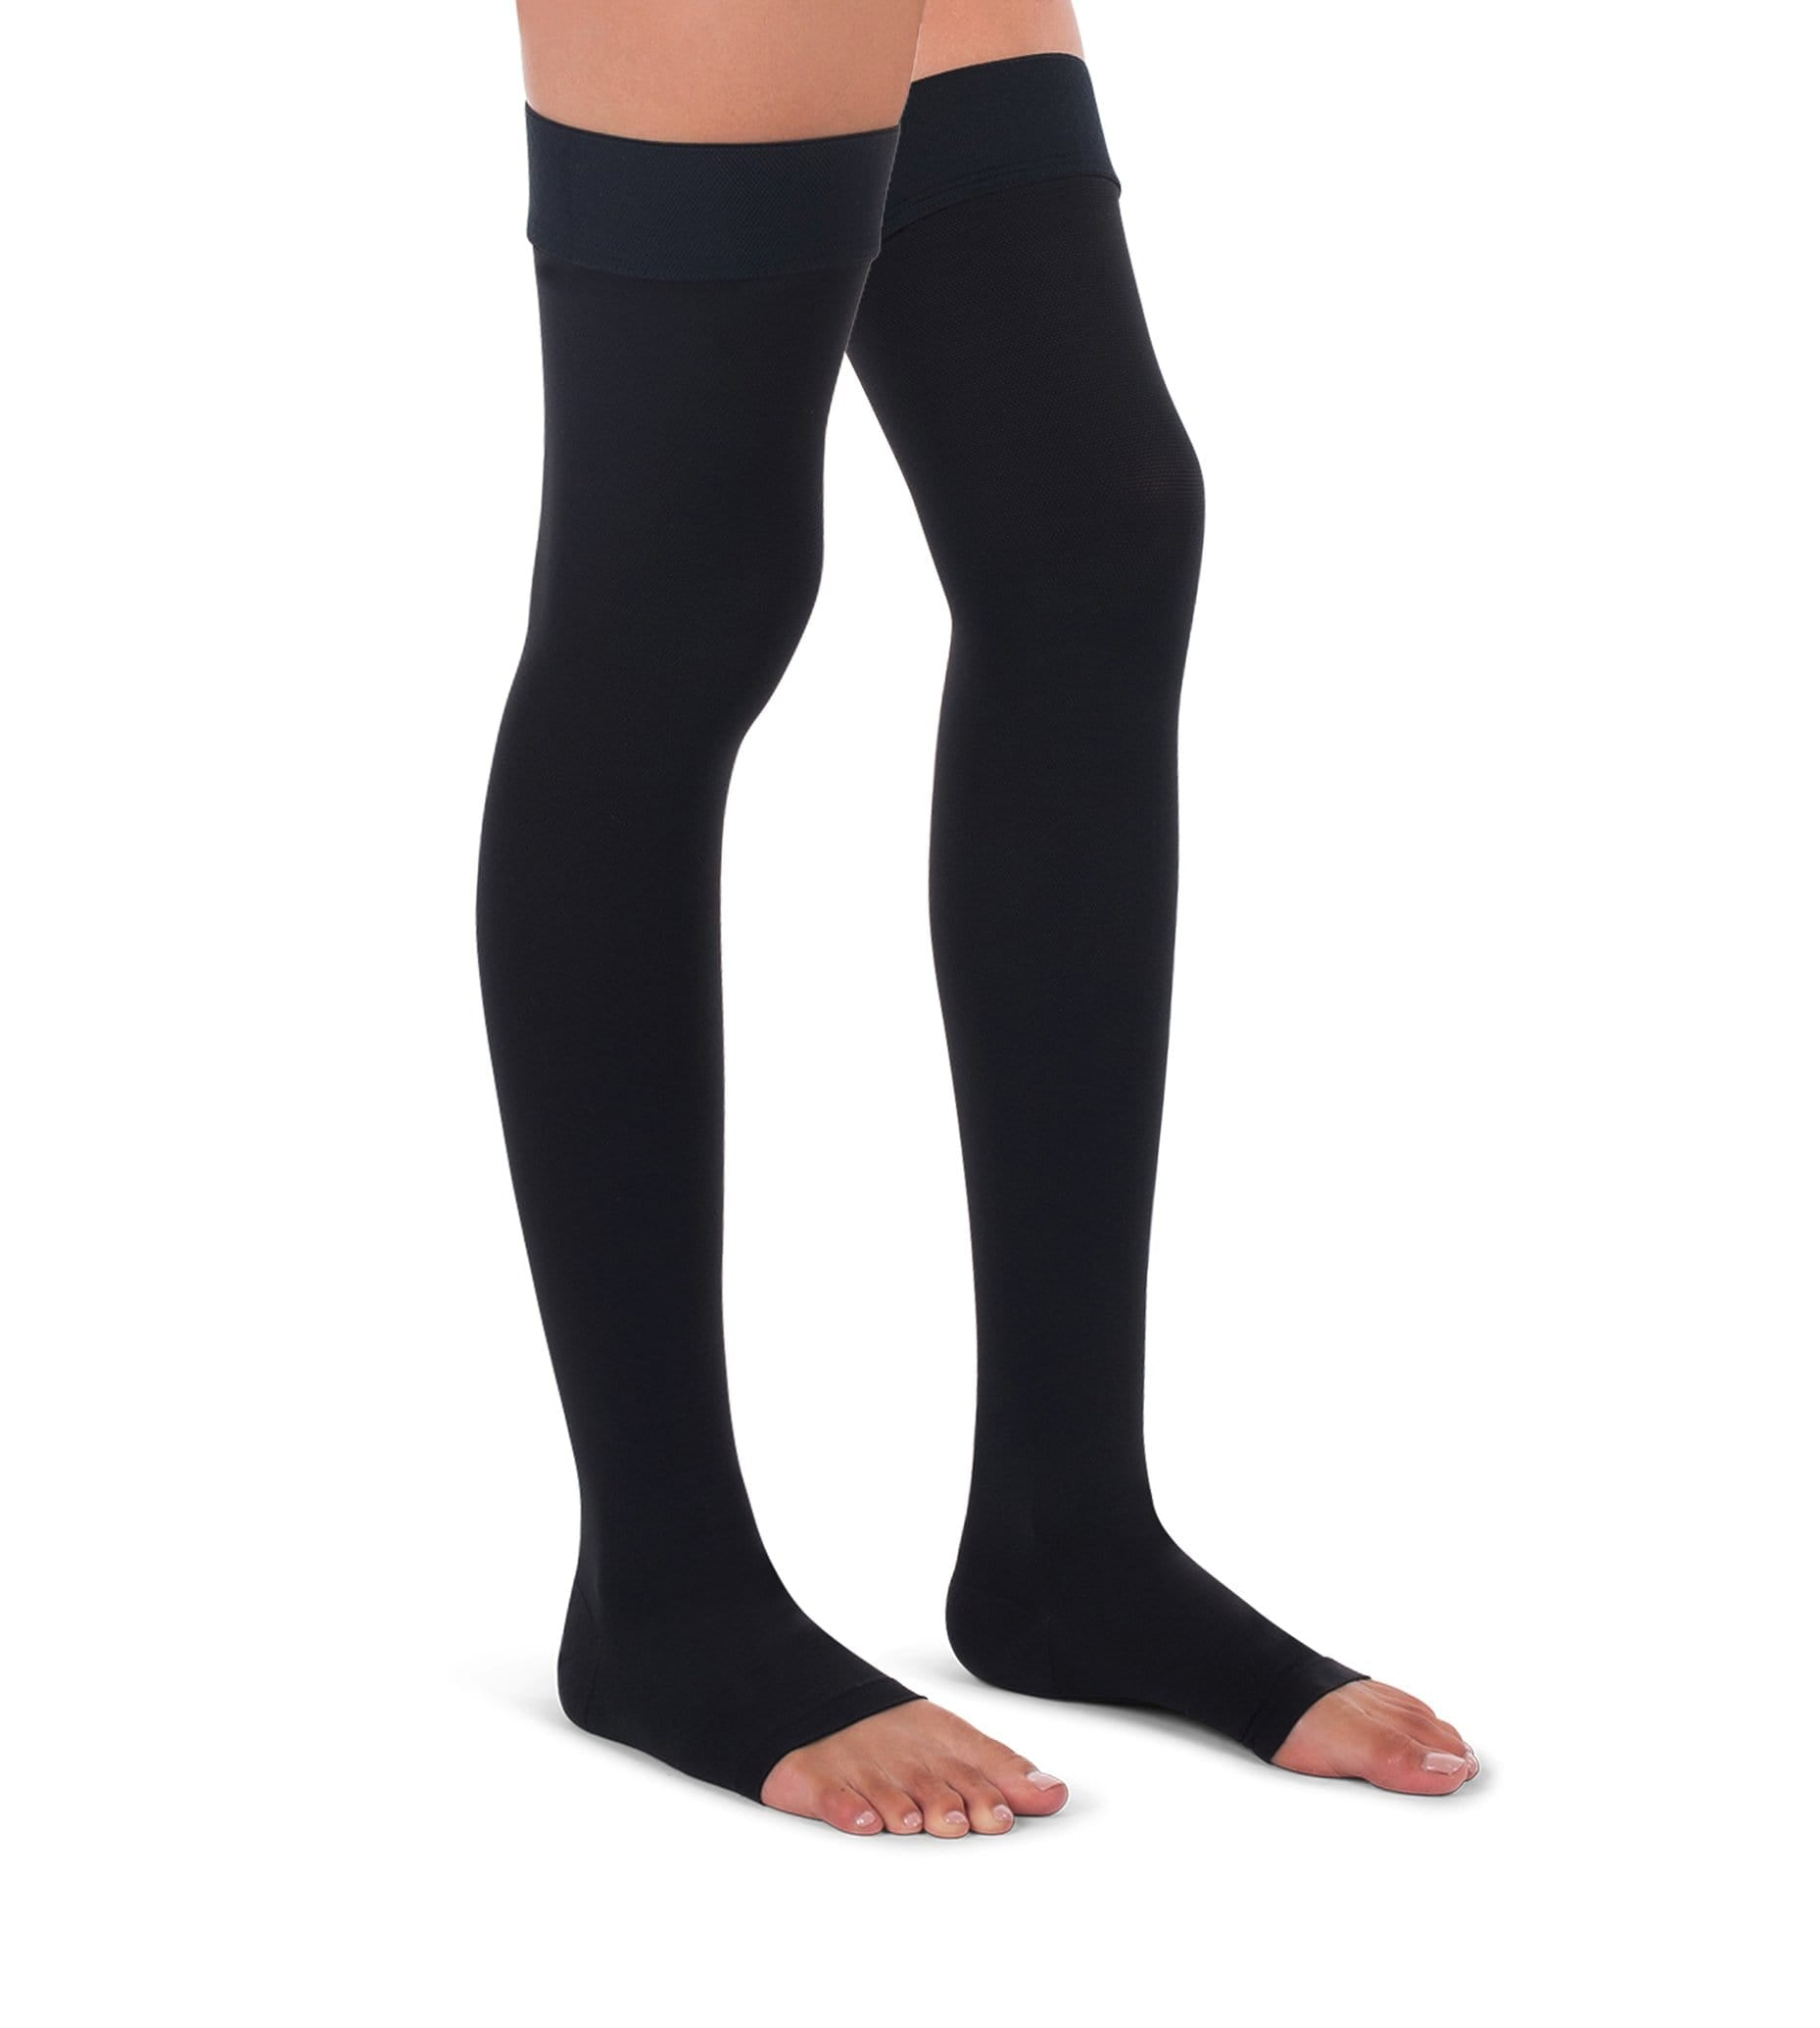 Thigh High Compression Stockings, 20-30mmHg Premiere Surgical Weight Open Toe - PETITE 265